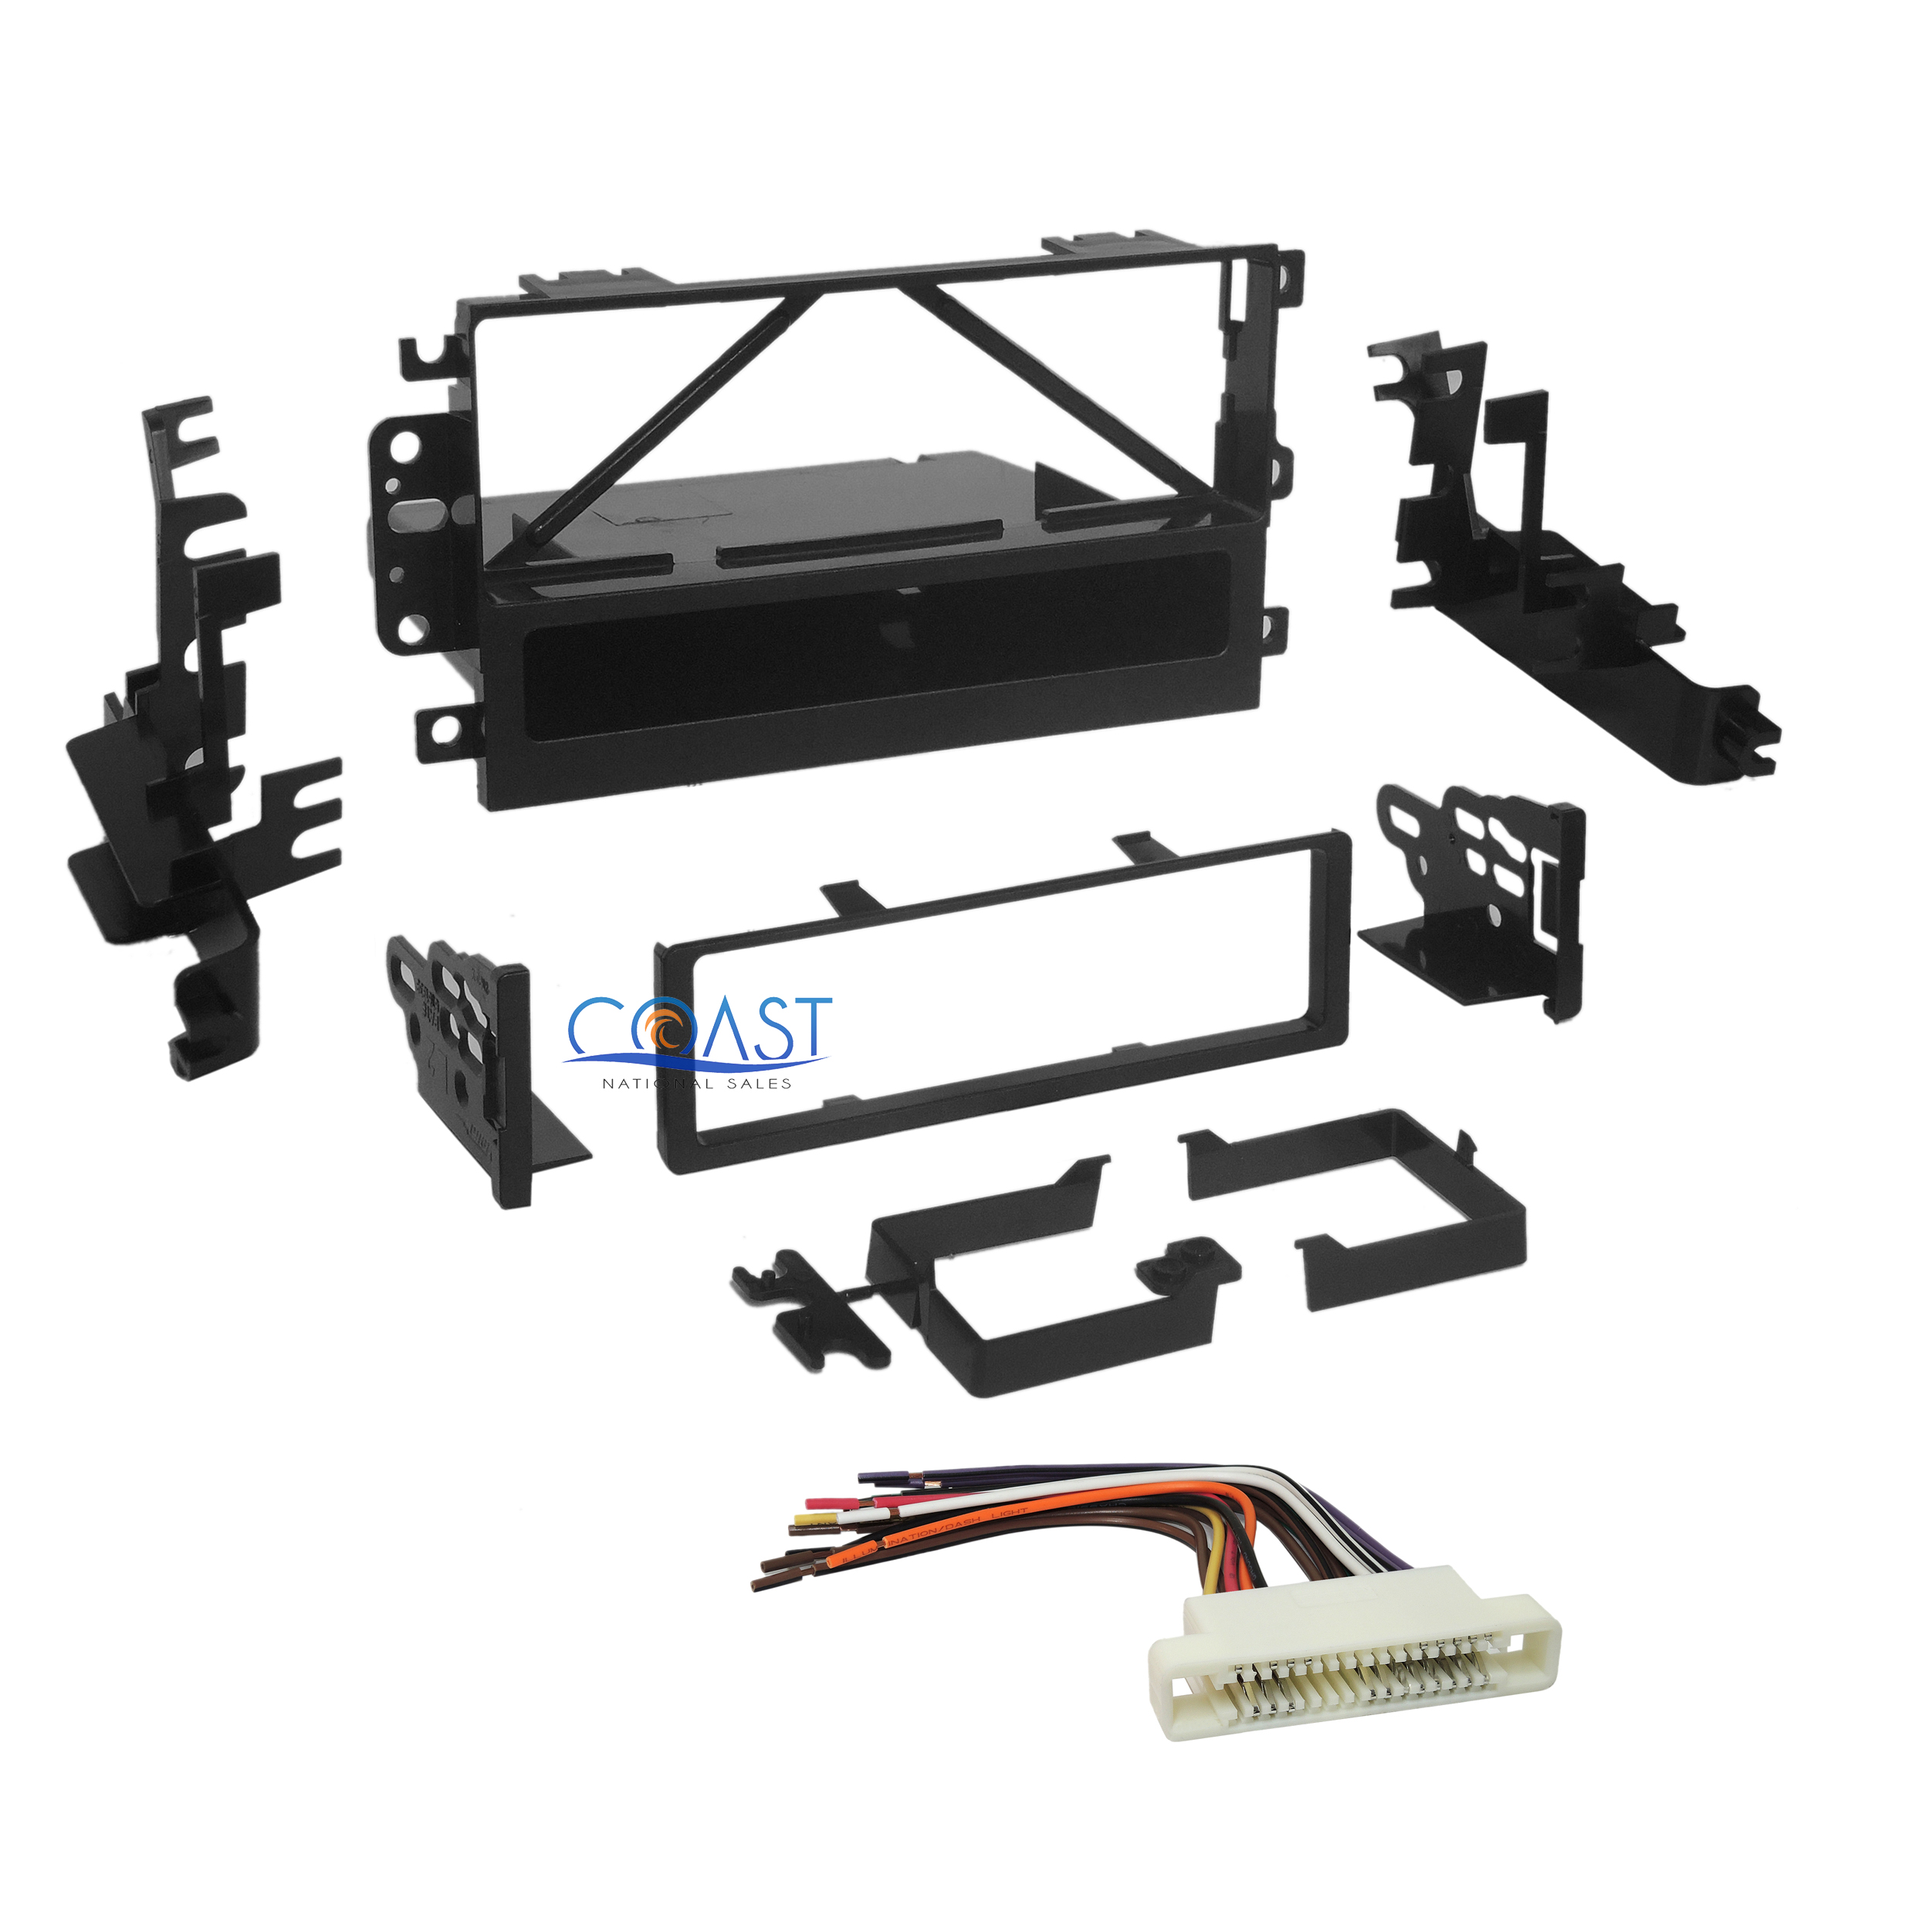 details about metra car stereo dash kit harness for 2000-05 buick lesabre  pontiac bonneville